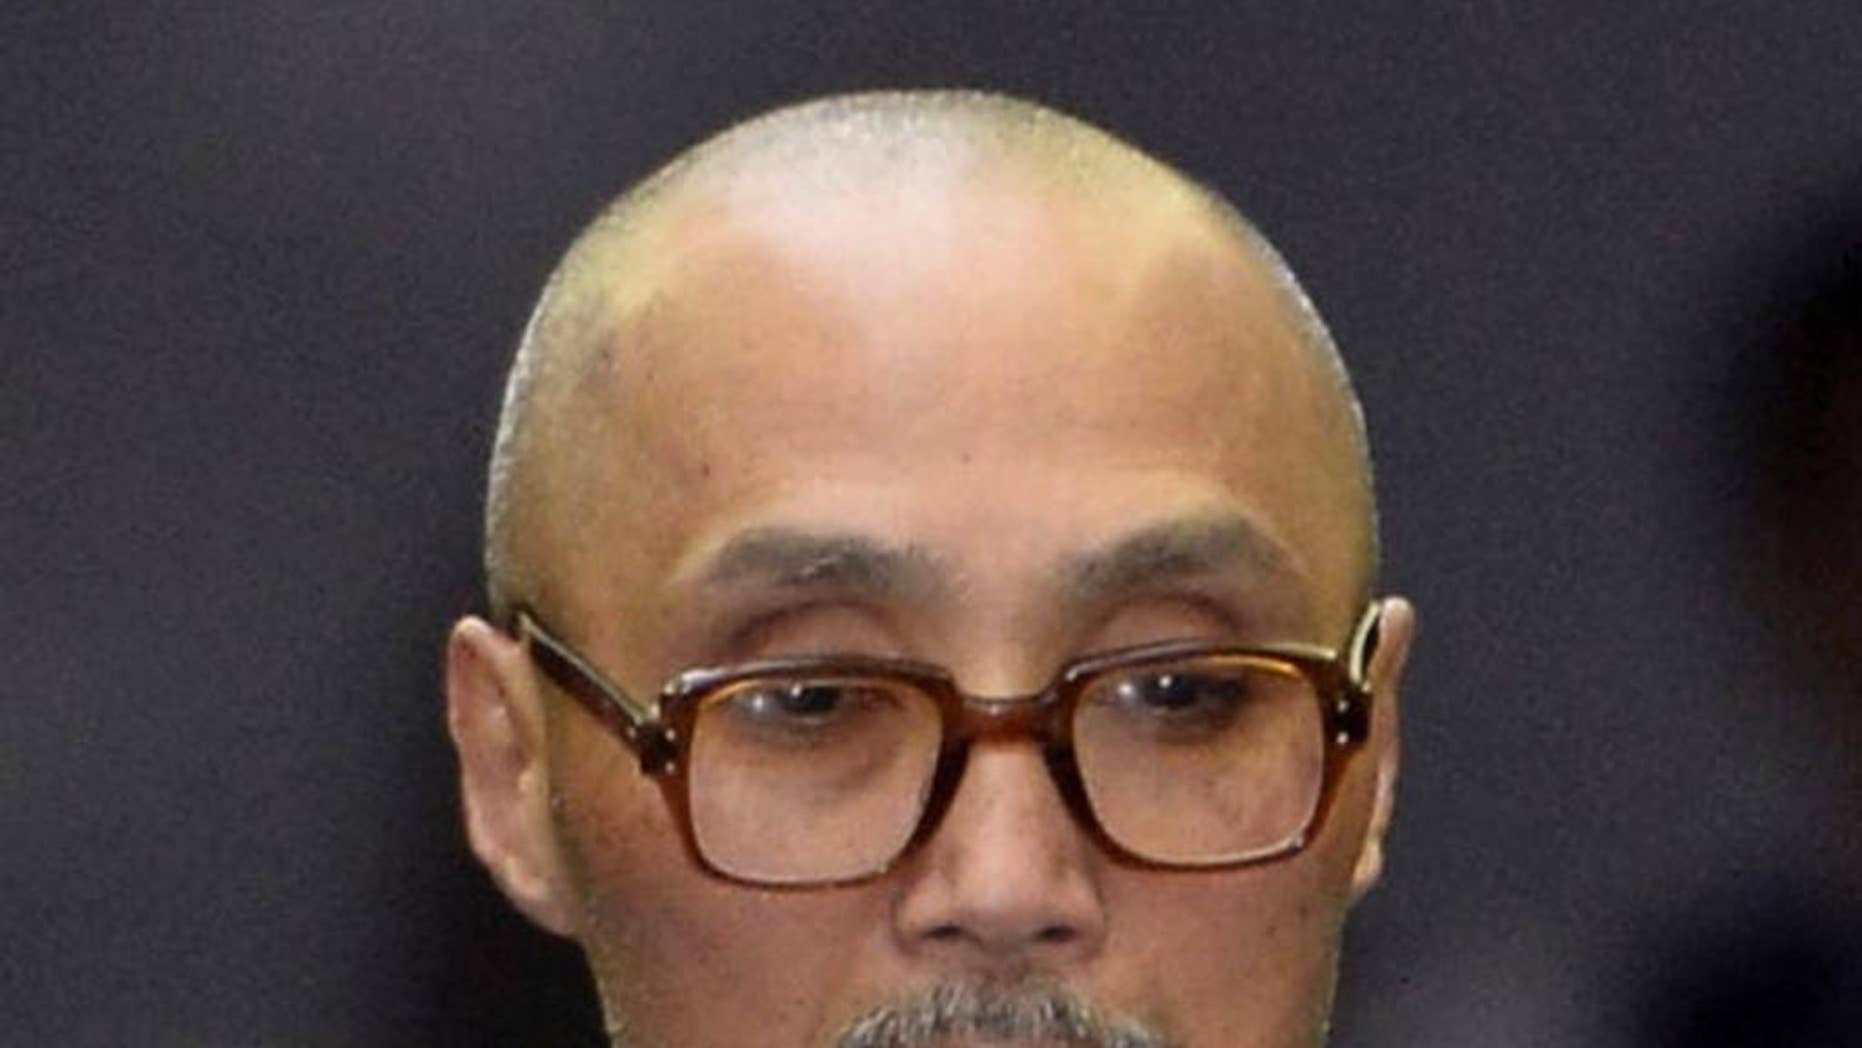 This undated photo shows former Japanese Red Army member Tsutomu Shirosaki. The member of a disbanded Japanese left-wing militant group was sentenced Thursday, Nov. 24, 2016 to 12 years in prison for an unsuccessful 1986 mortar attack on the Japanese Embassy in Indonesia, the Tokyo District Court said. (Kyodo News via AP)